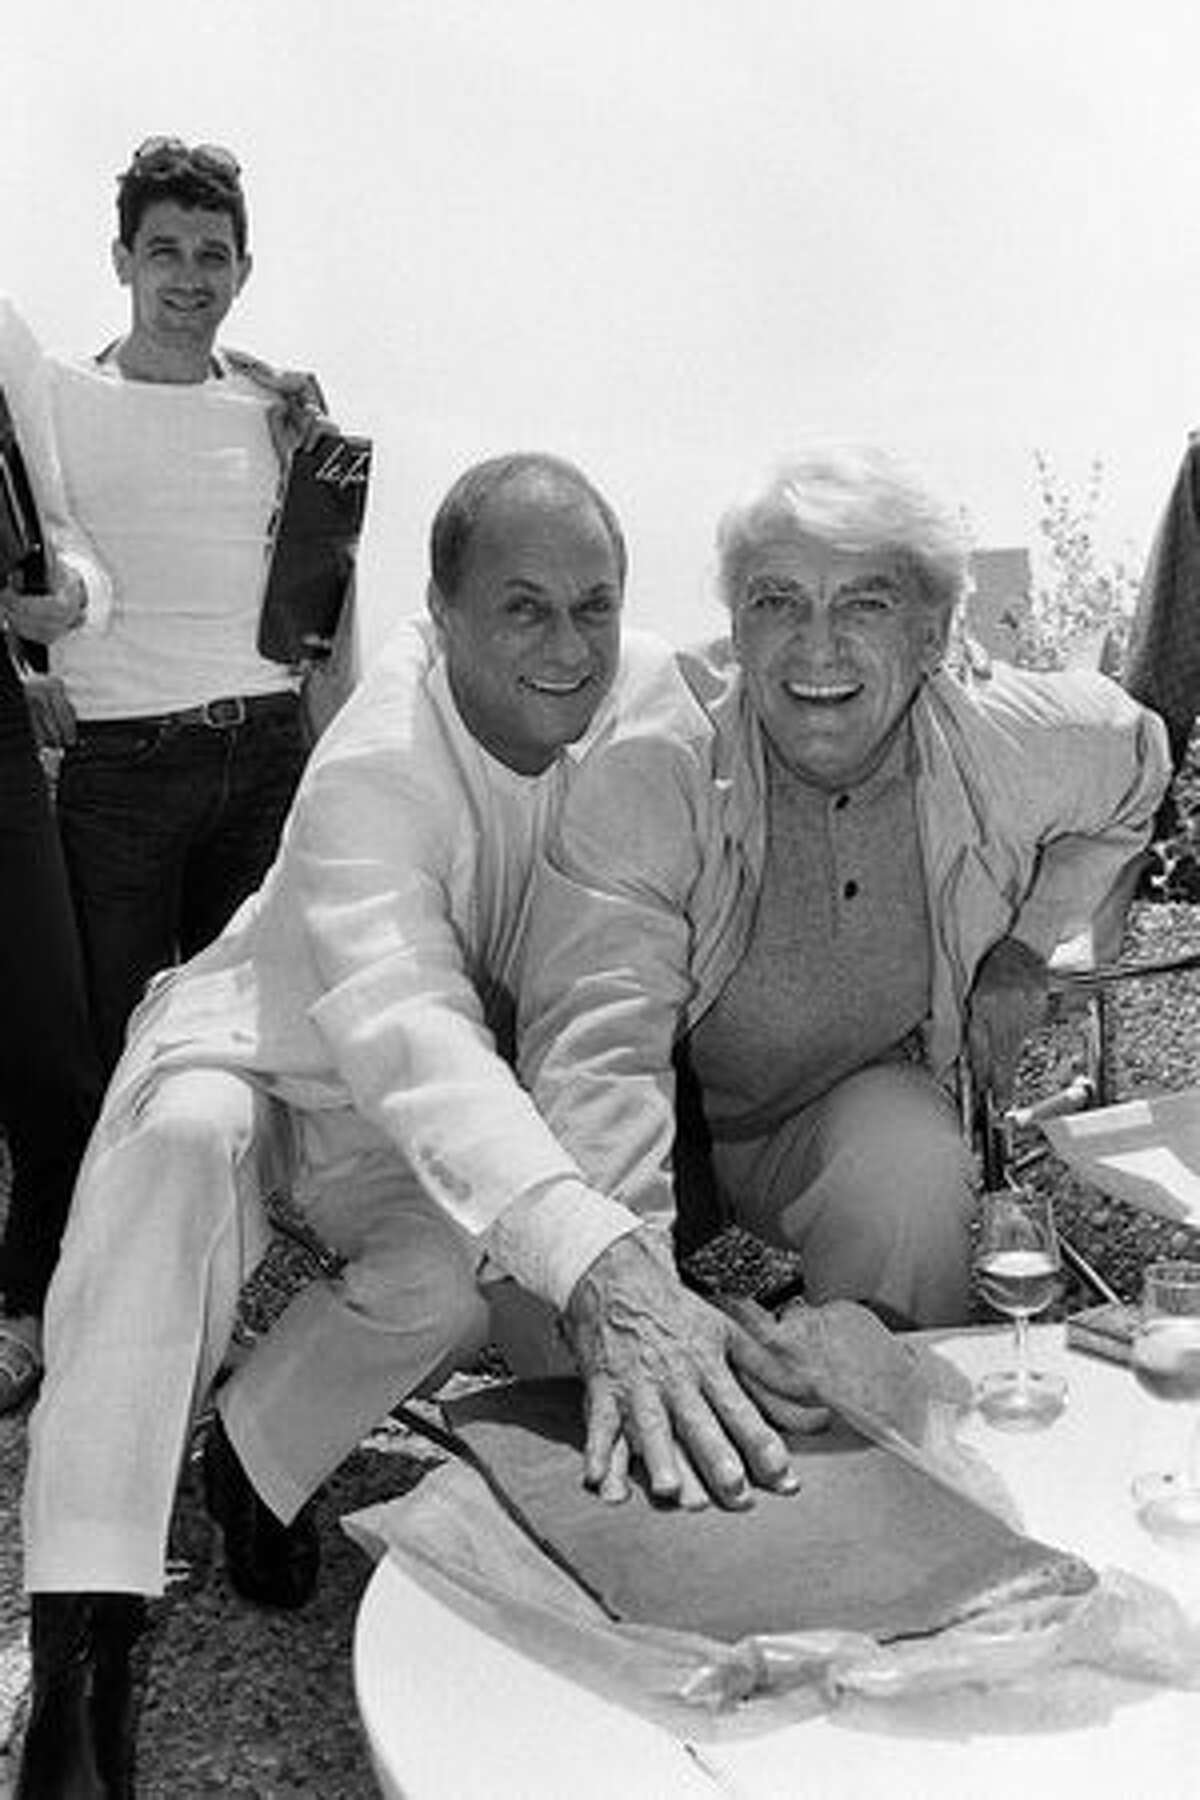 American actor Tony Curtis is pictured hand on hand with French actor Jean Marais May 22, 1984, in Cannes during the 37th International Film Festival. (FILM) AFP PHOTO/RALPH GATTI